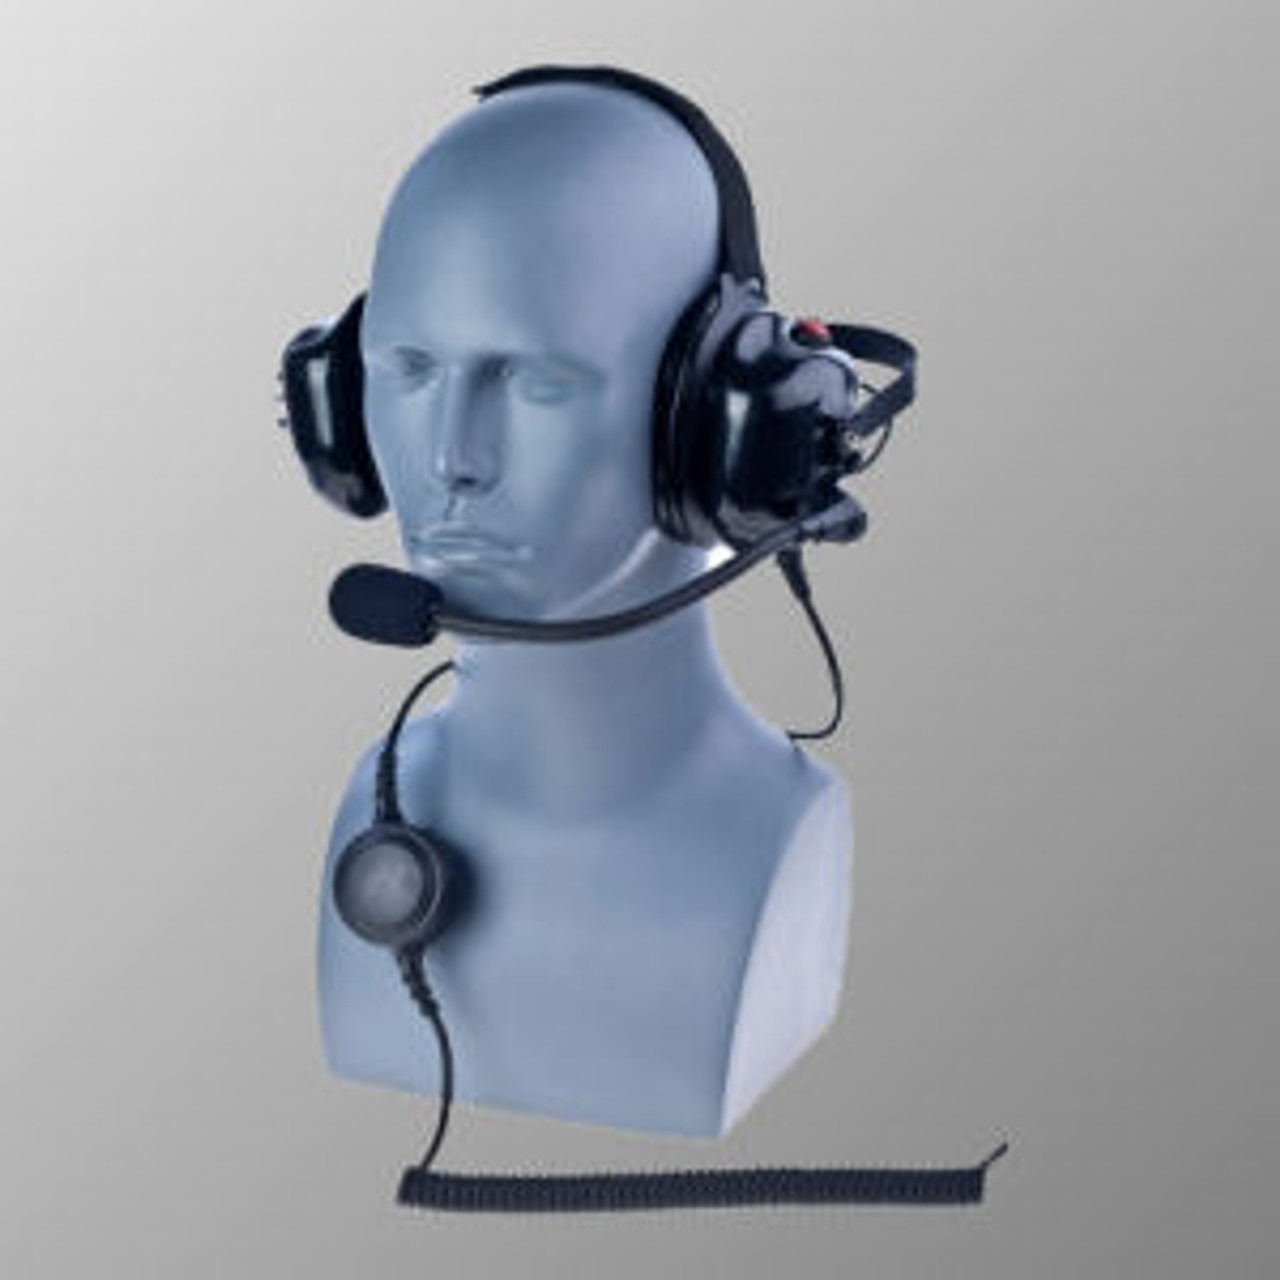 Kenwood NX-210G Noise Canceling Behind The Head Double Muff Headset